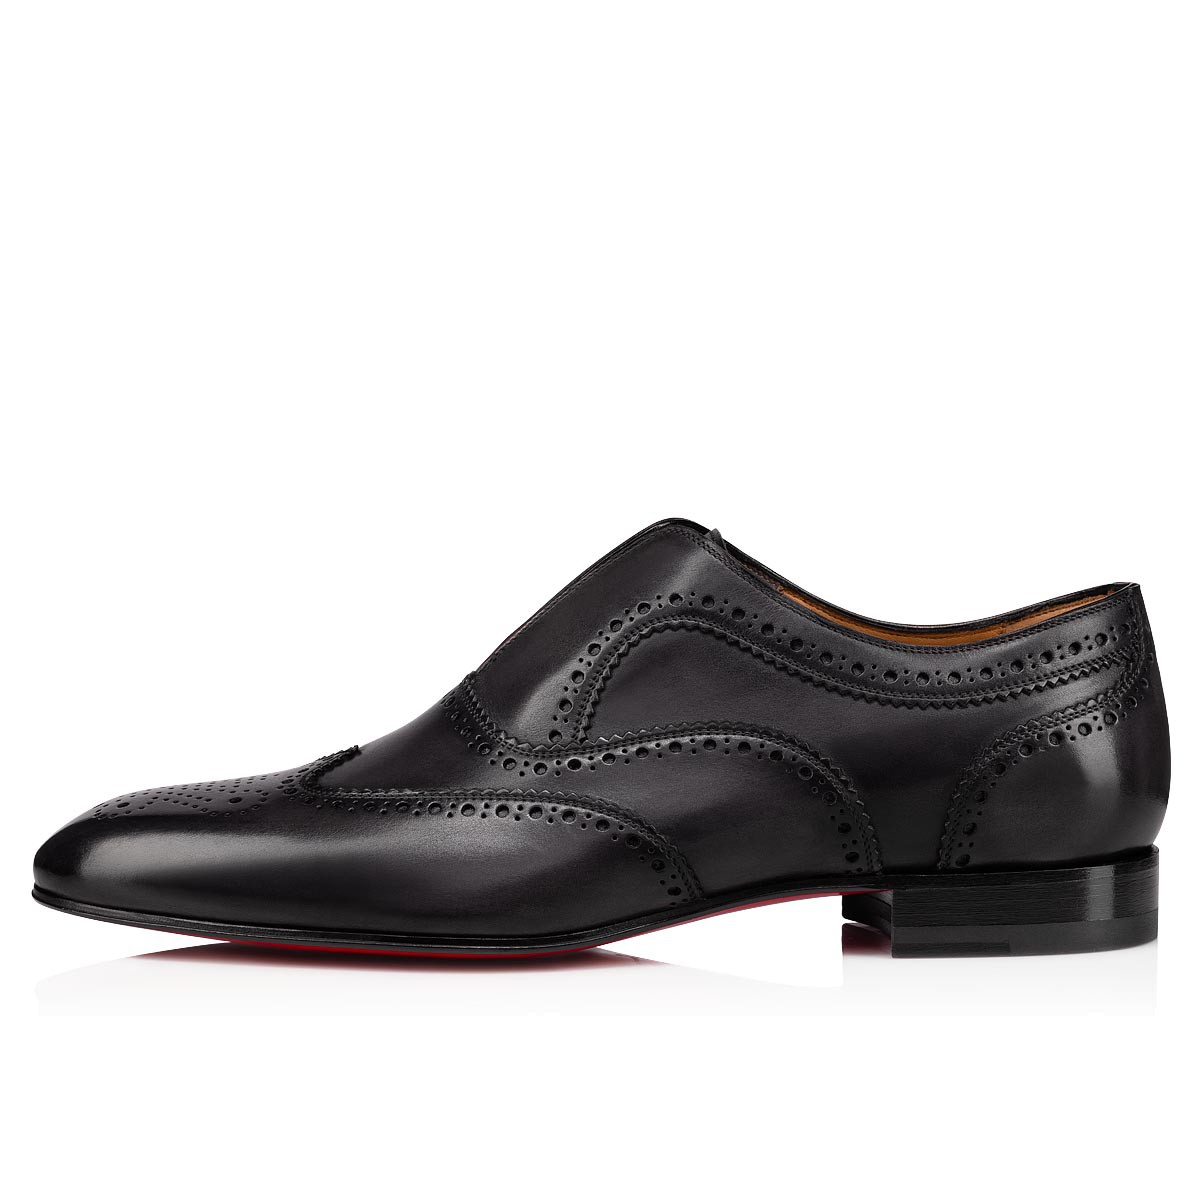 Shoes - Platerboy - Christian Louboutin